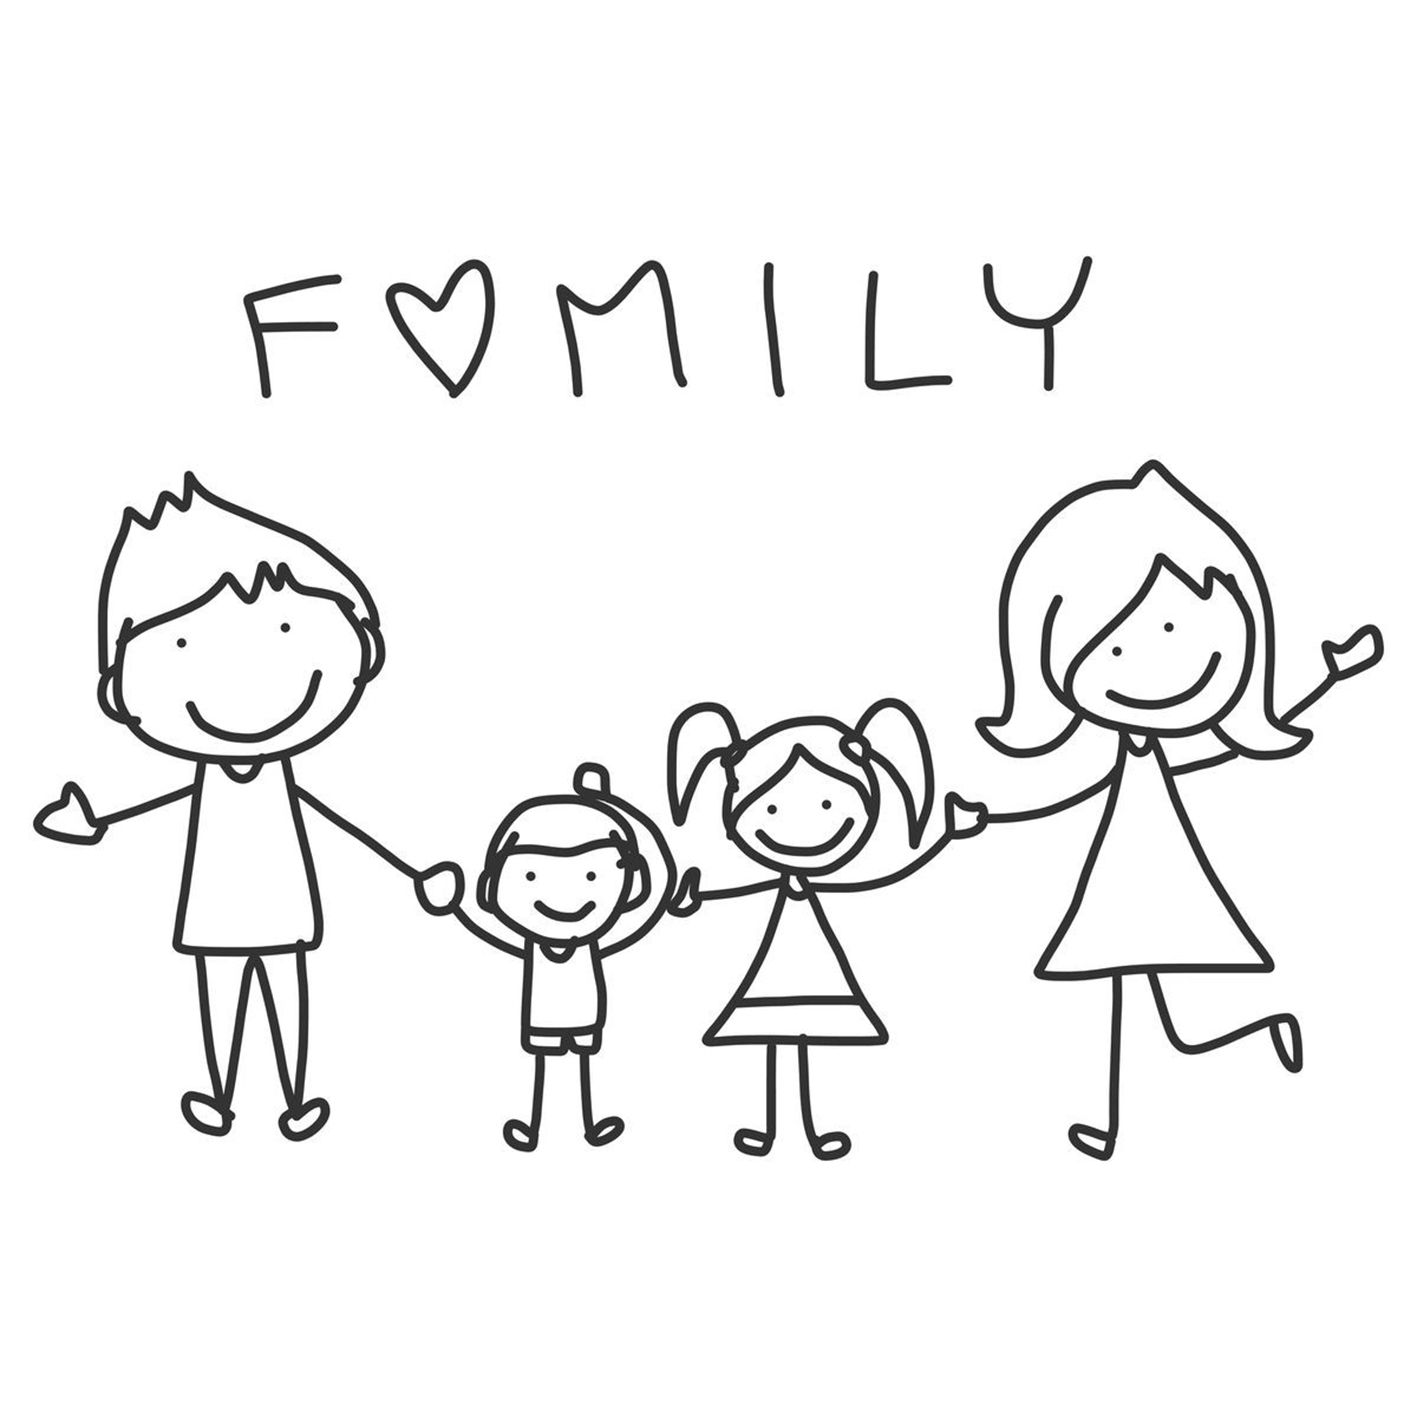 Pin by Ana Santos on Newborn | Family drawing, Family cartoon, Stick figure  drawing